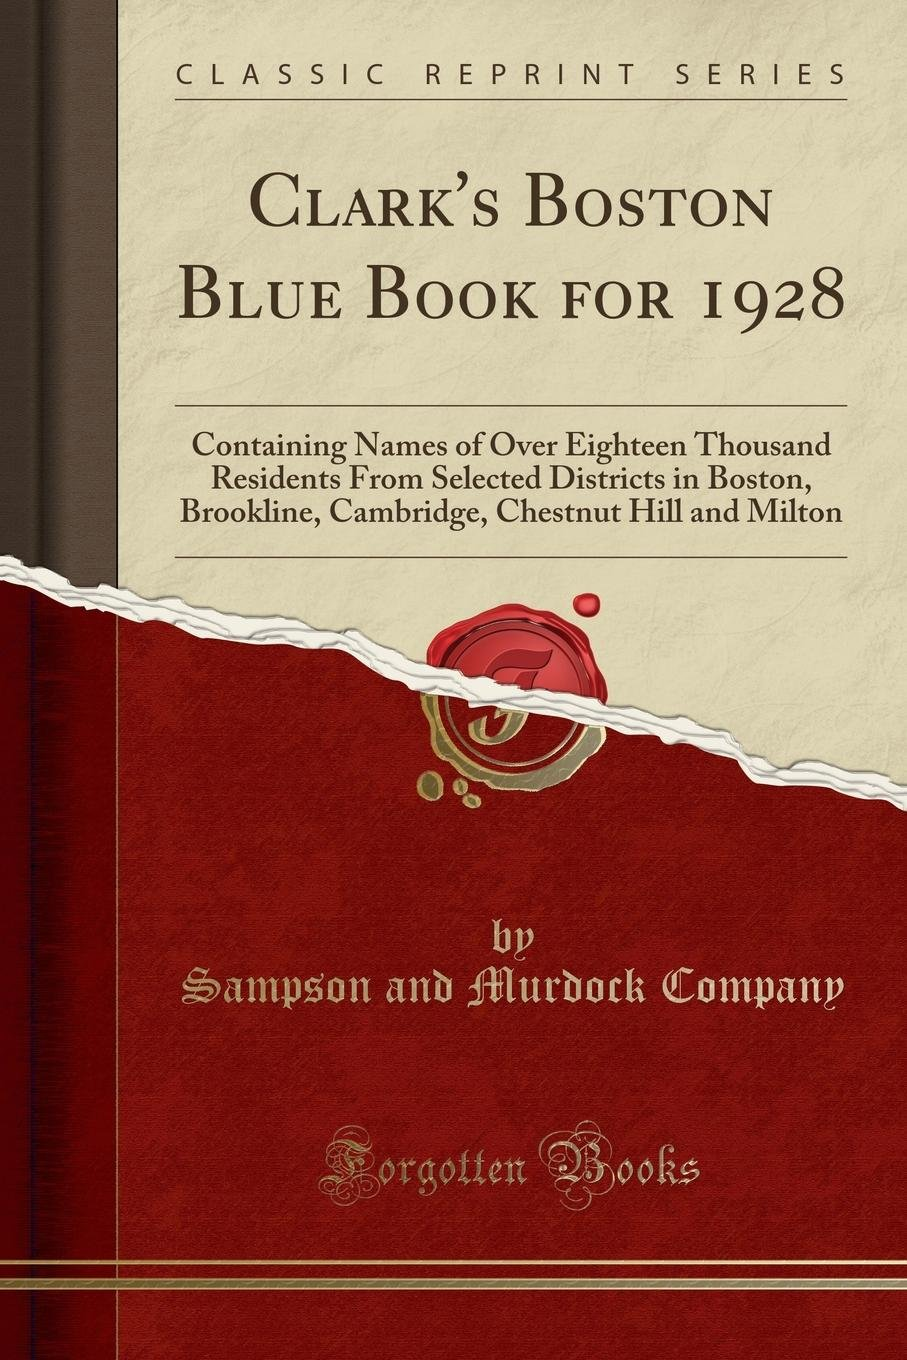 Clark's Boston Blue Book for 1928: Containing Names of Over Eighteen Thousand Residents From Selected Districts in Boston, Brookline, Cambridge, Chestnut Hill and Milton (Classic Reprint) pdf